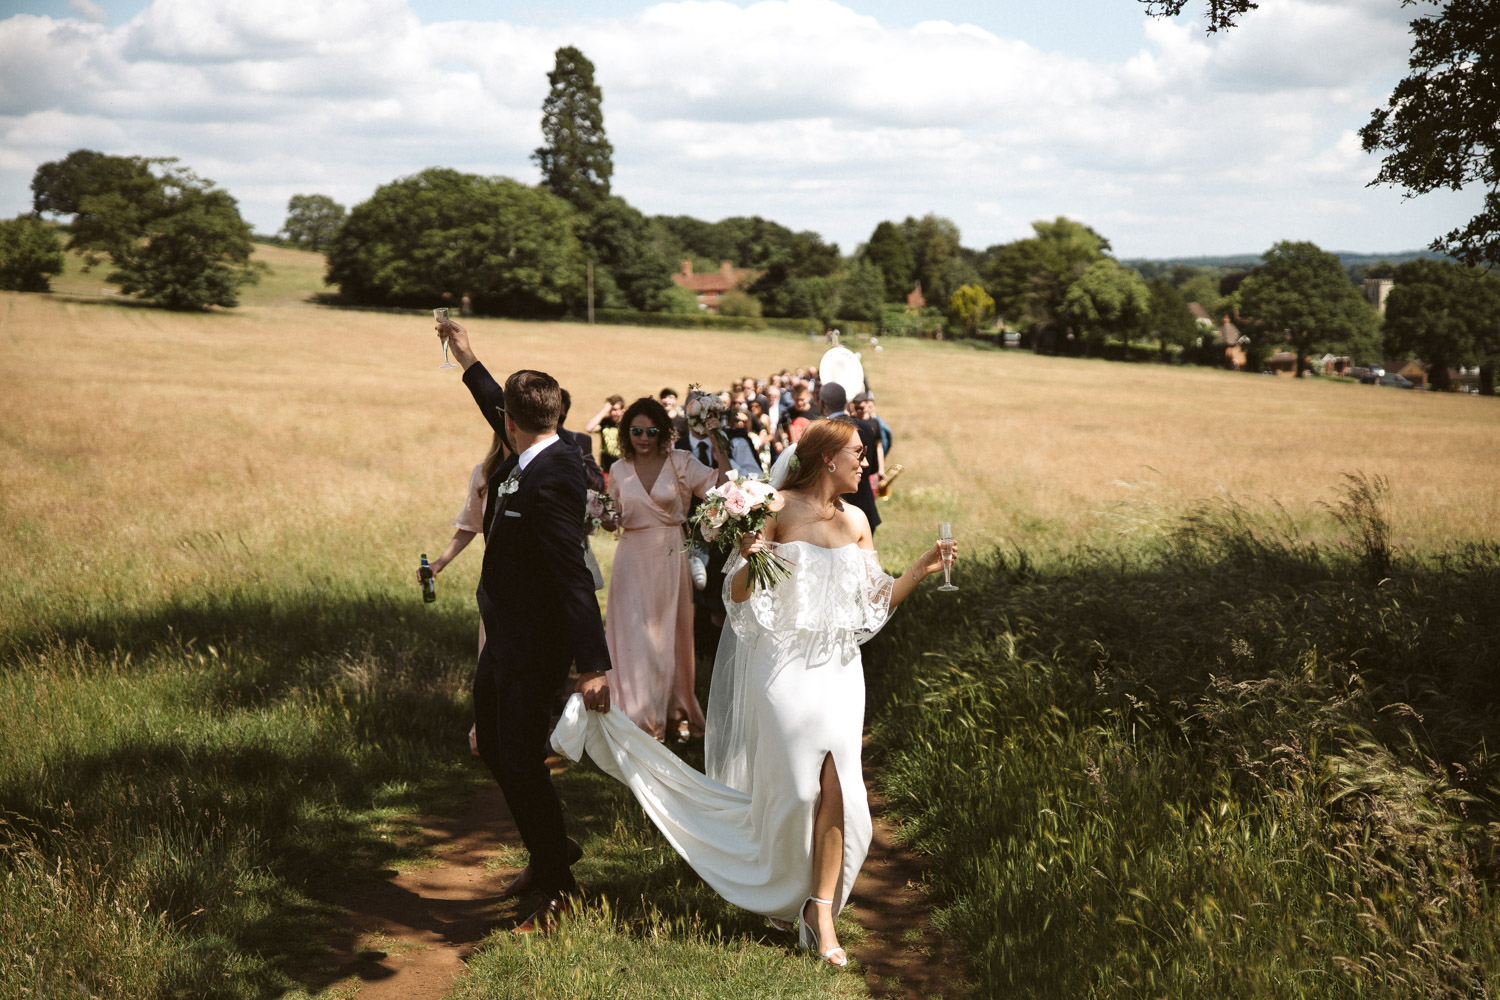 the bride and groom leading the guests down the hills in the hidden valley to their tipi